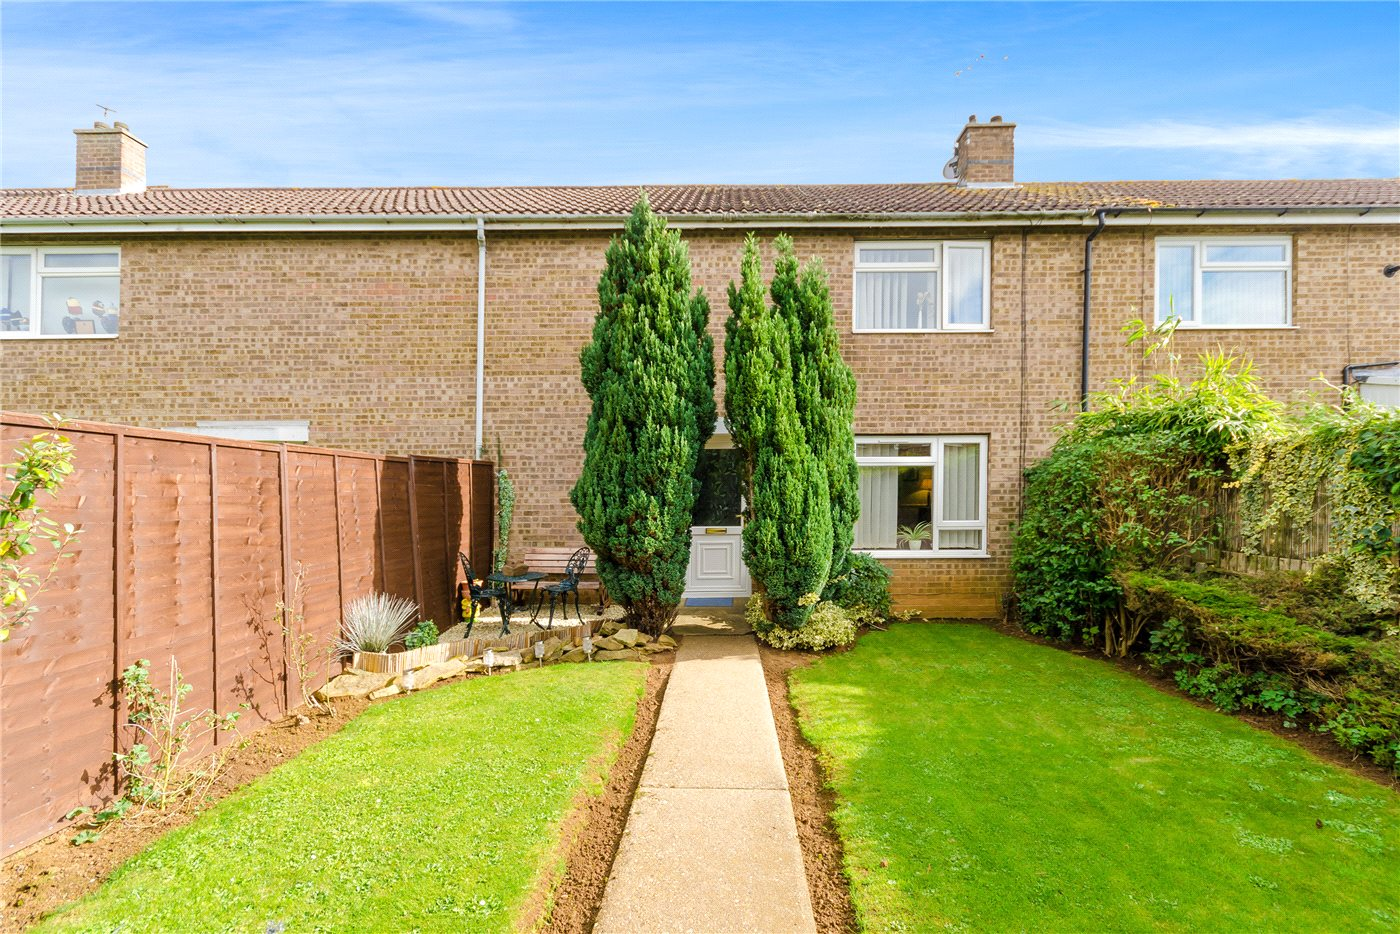 3 Bedrooms Terraced House for sale in Hornsby Road, Grantham, NG31